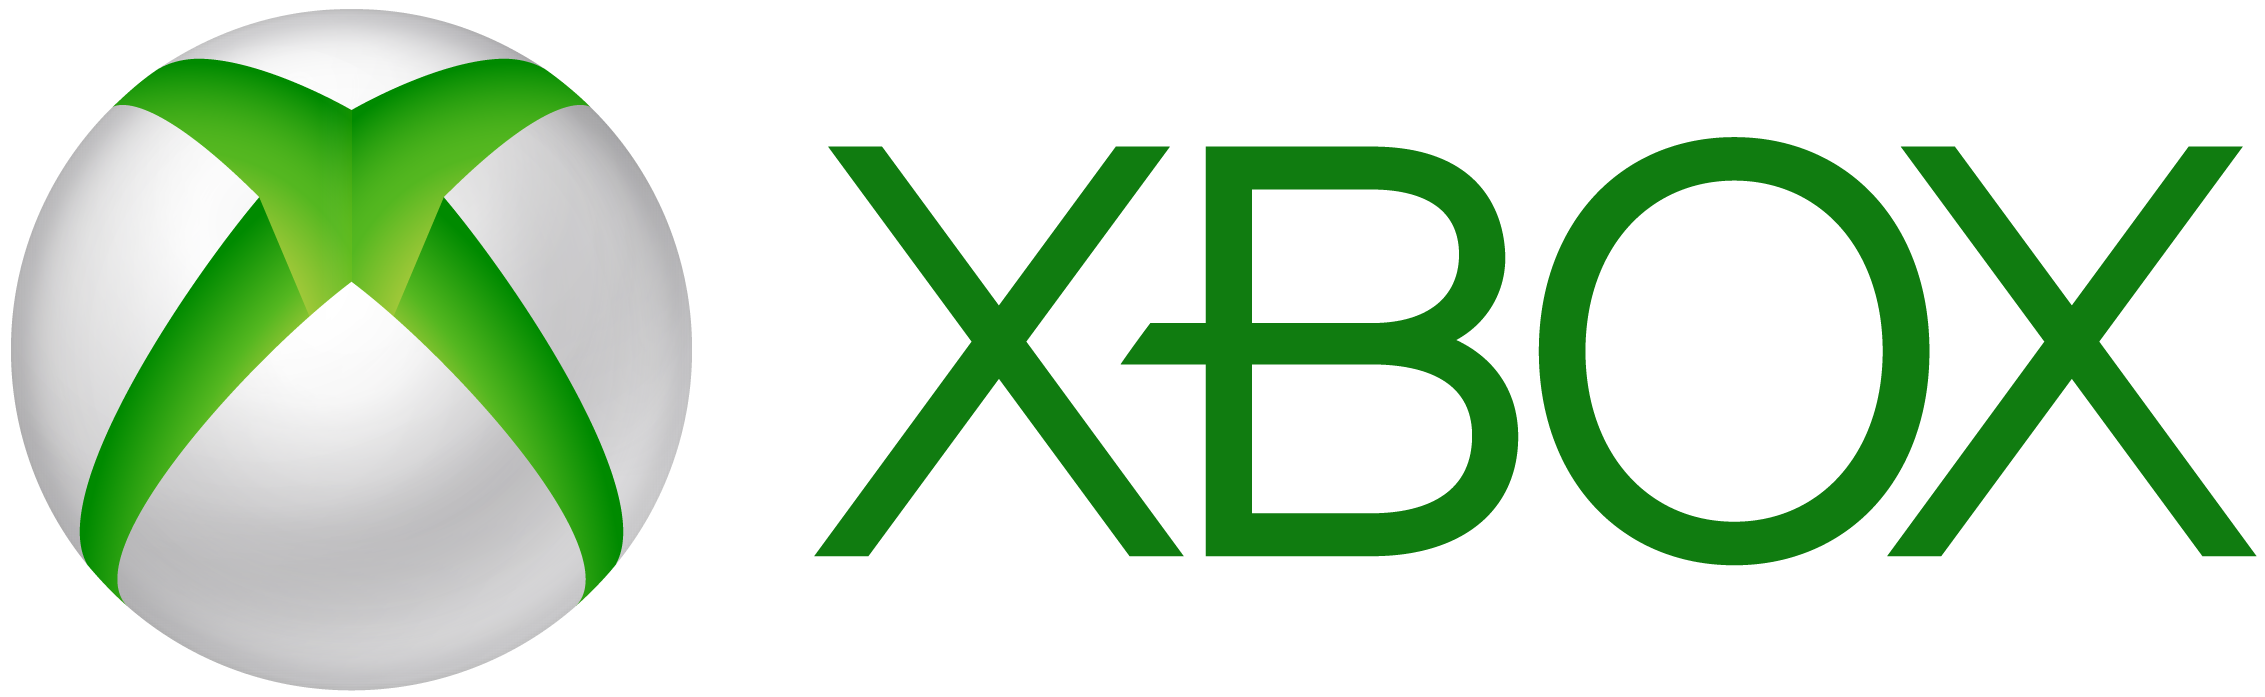 Here at gamephd we provide freebie alerts free xbox live codes here at gamephd we provide freebie alerts free xbox live codes along with technology video game related blog posts fandeluxe Choice Image